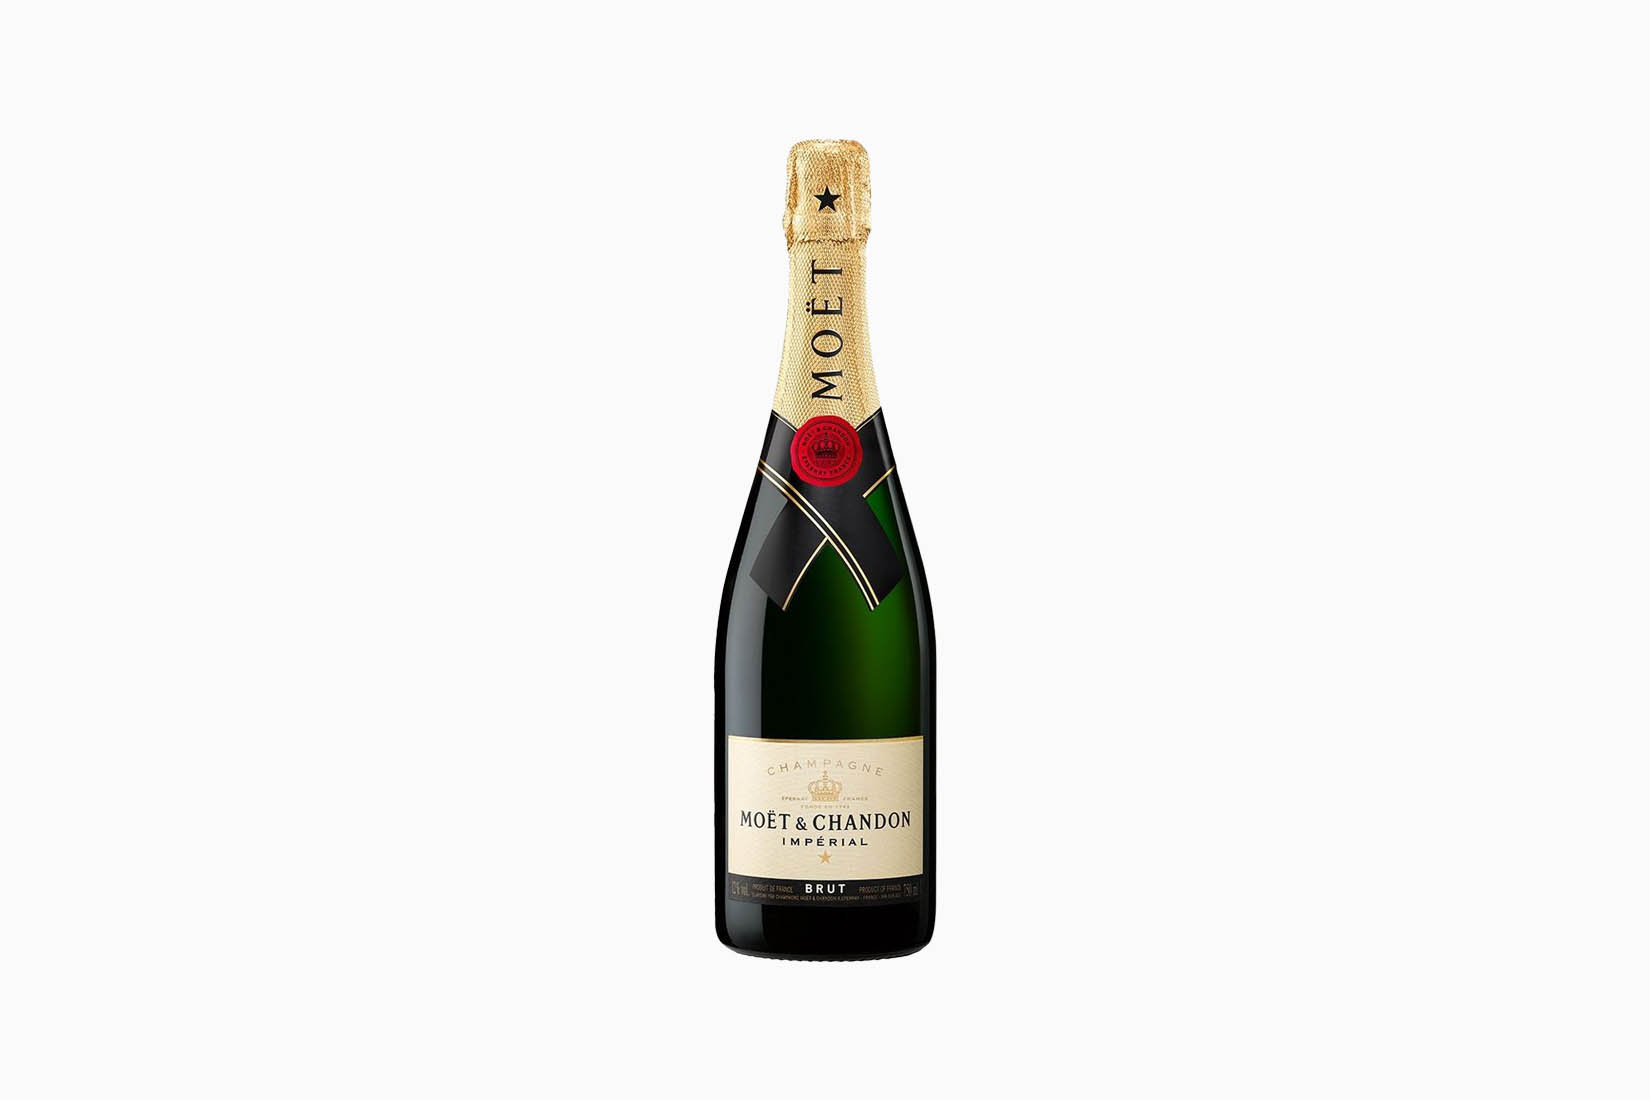 moet chandon champagne imperial brut price review Luxe Digital